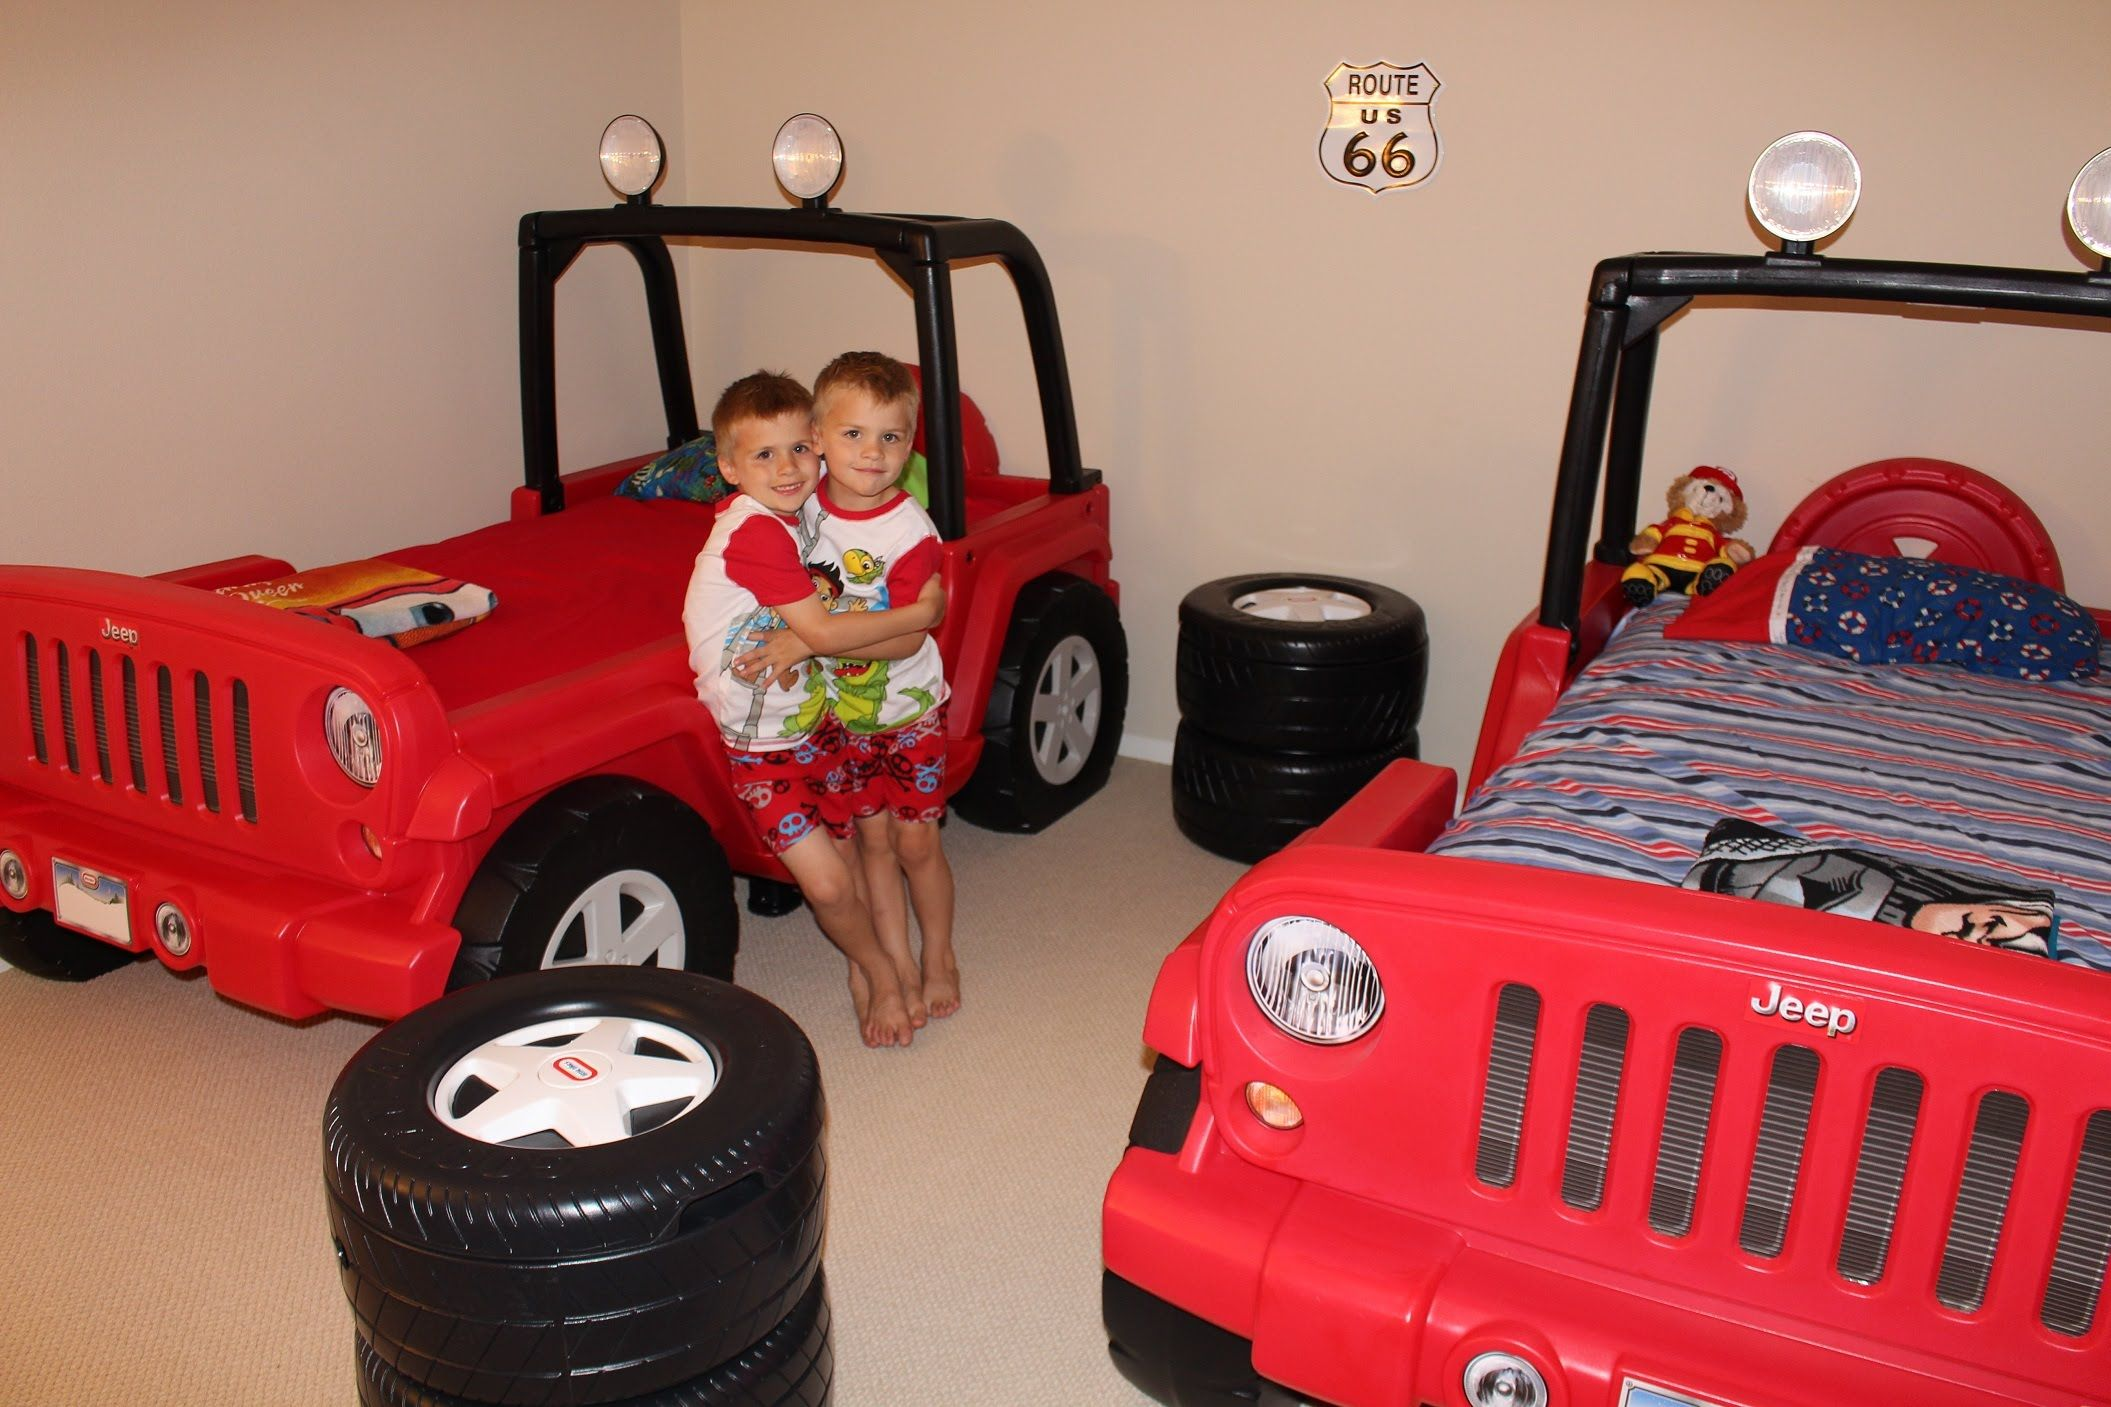 Twins New Little Tikes Jeep Beds Jeep Bed Kids Bedroom Boys Toddler Baby Nursery Design